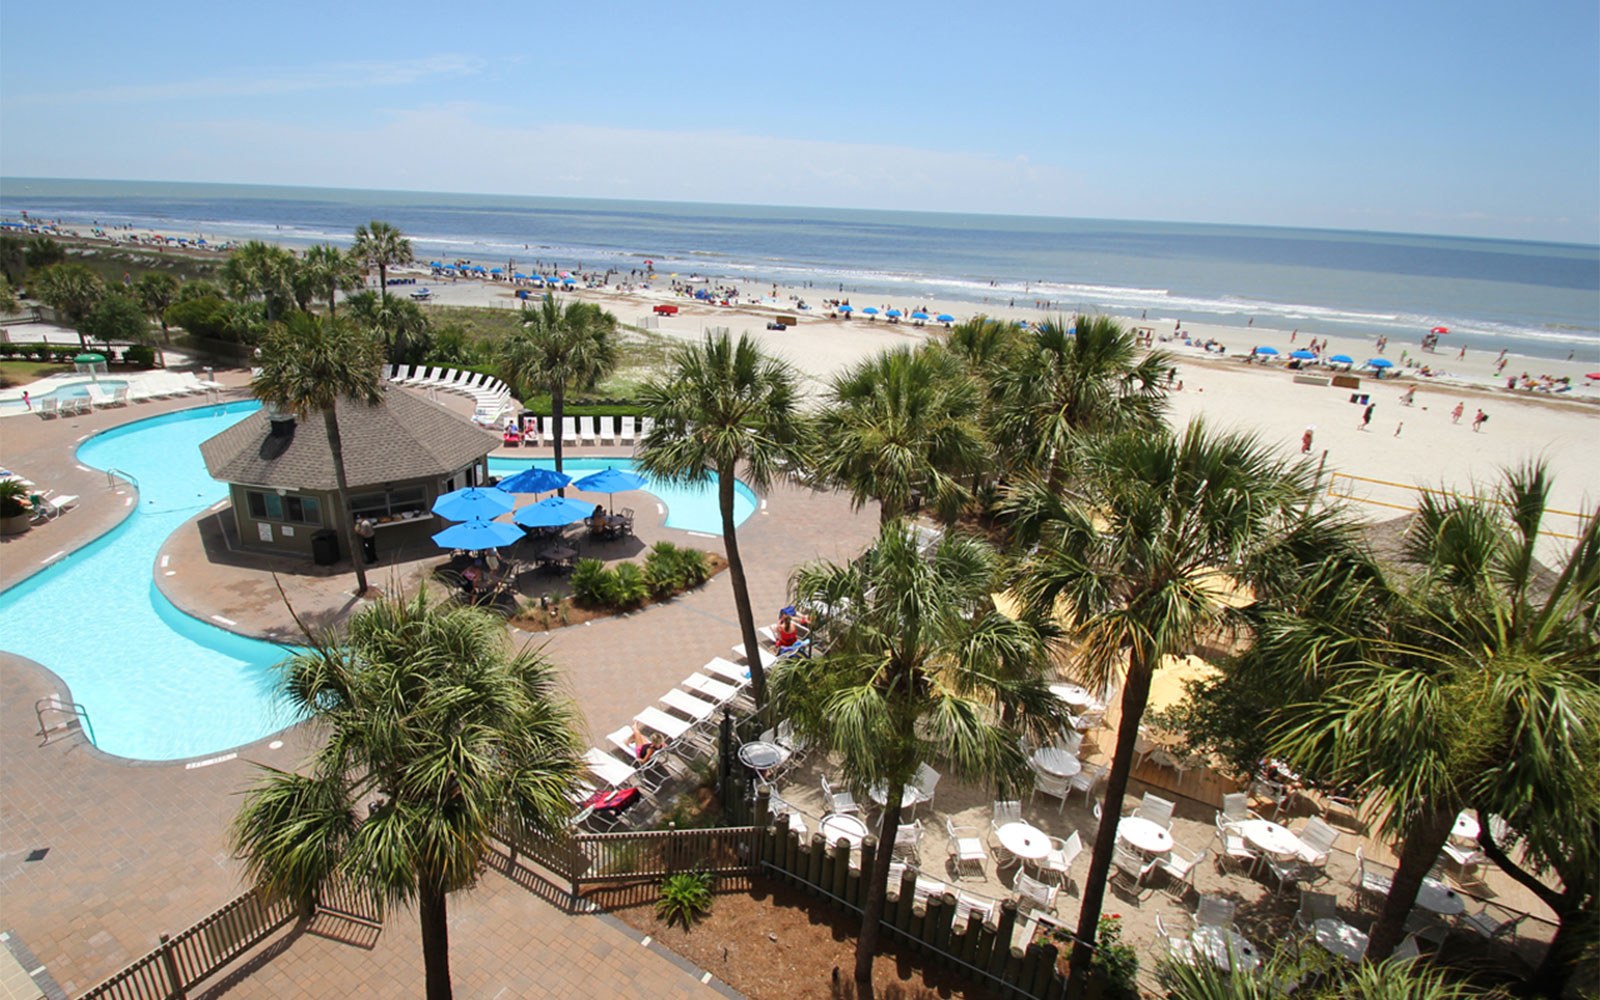 Hilton Head travel guide